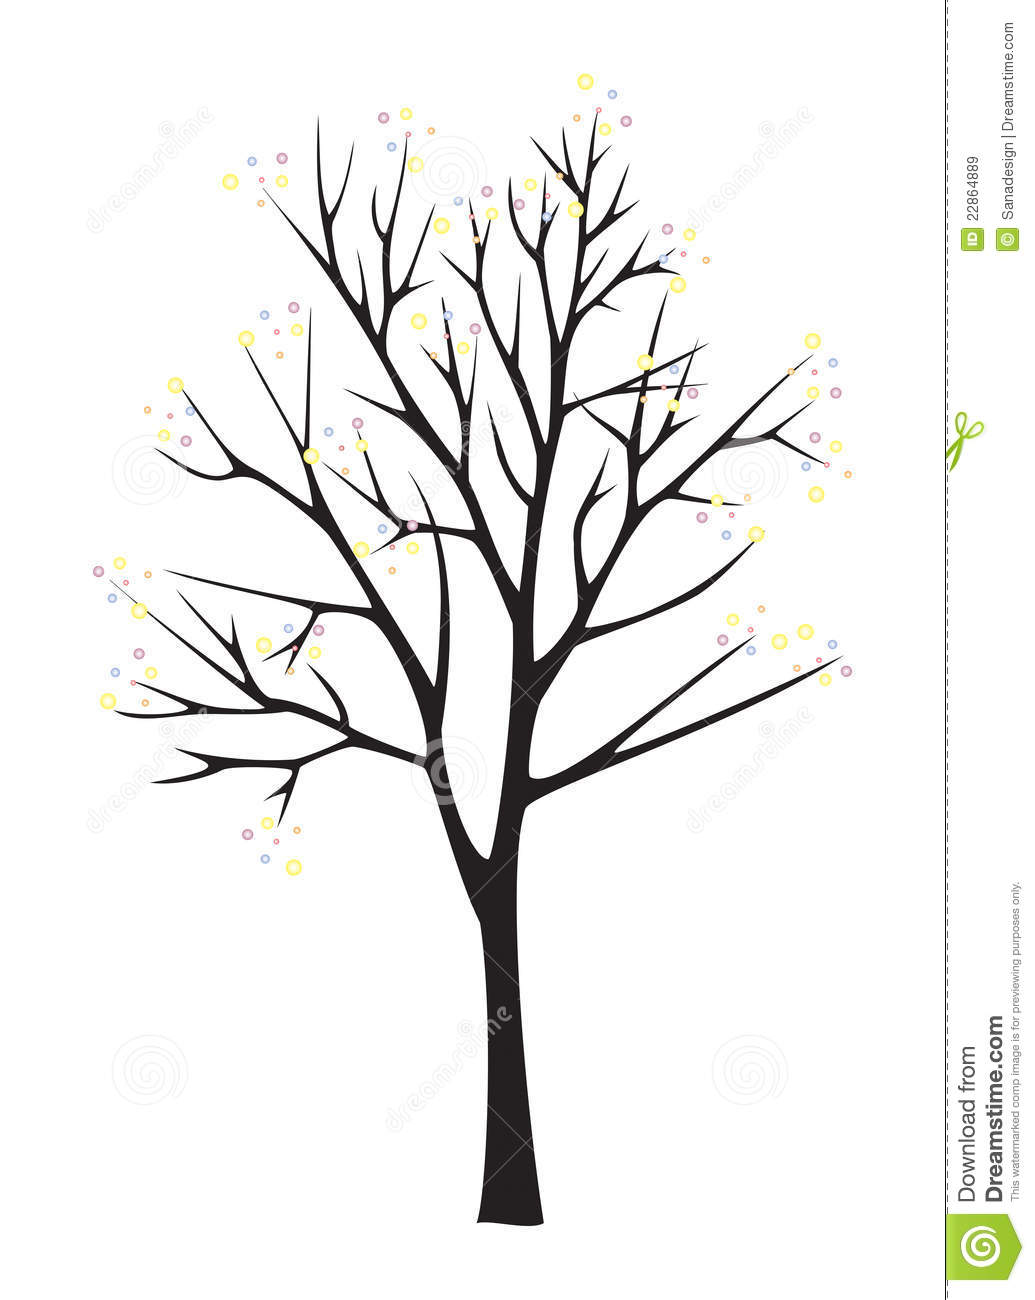 Black Tree Silhouette On White Background Royalty Free Stock Images ...